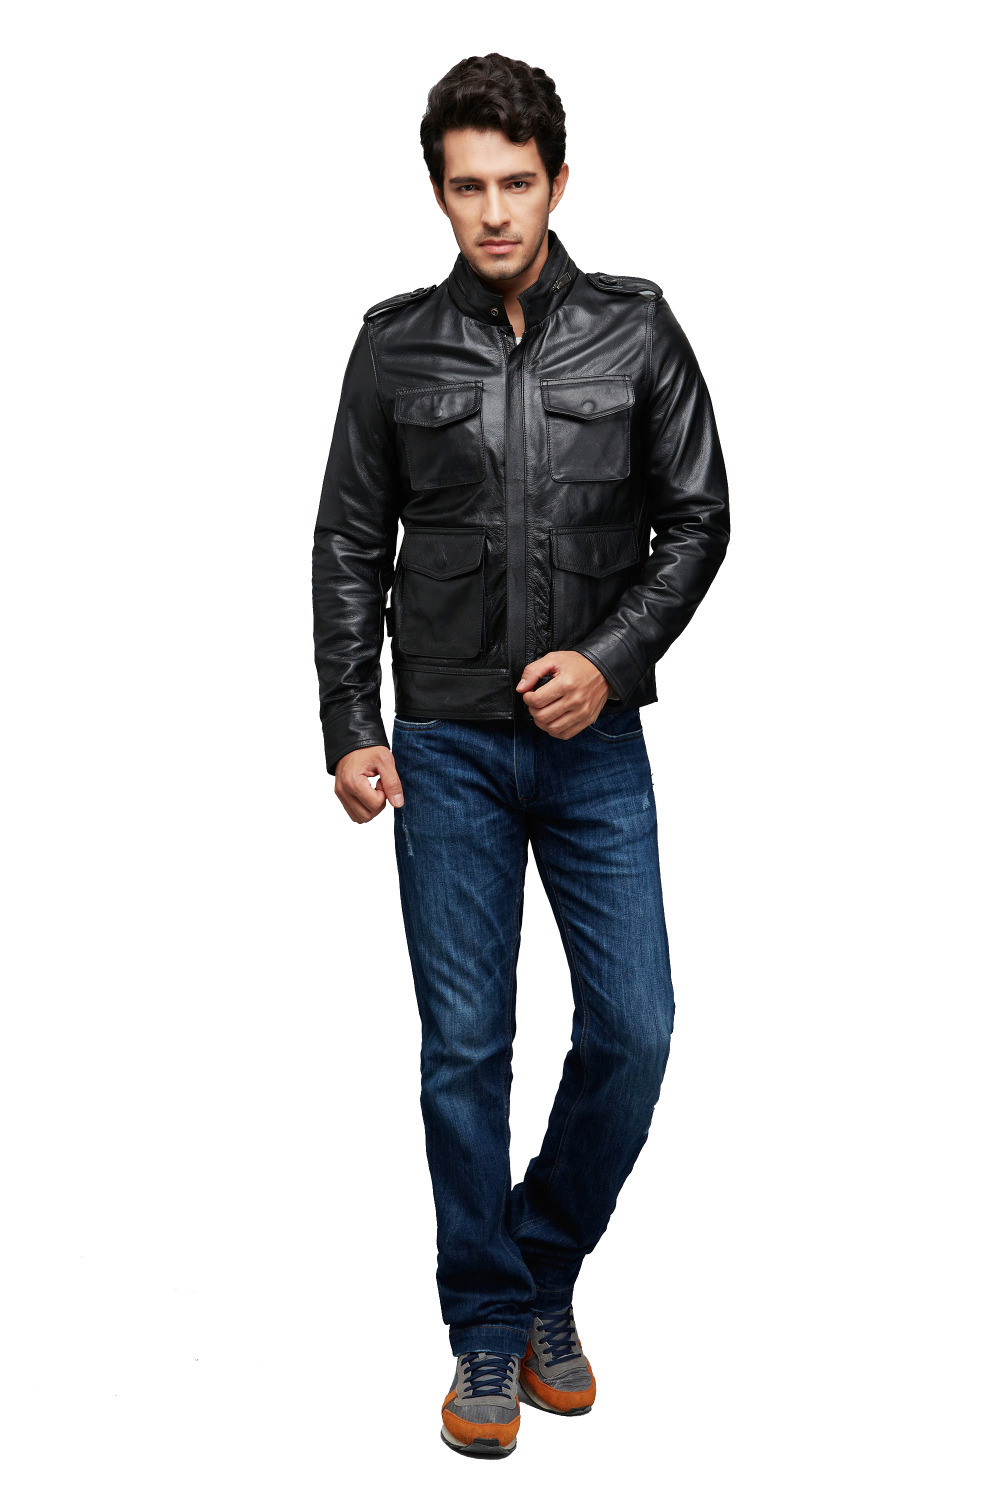 AK Leatherware Authentic New Fashion Men Genuine Cow Hides Leather Jacket with Epaulet